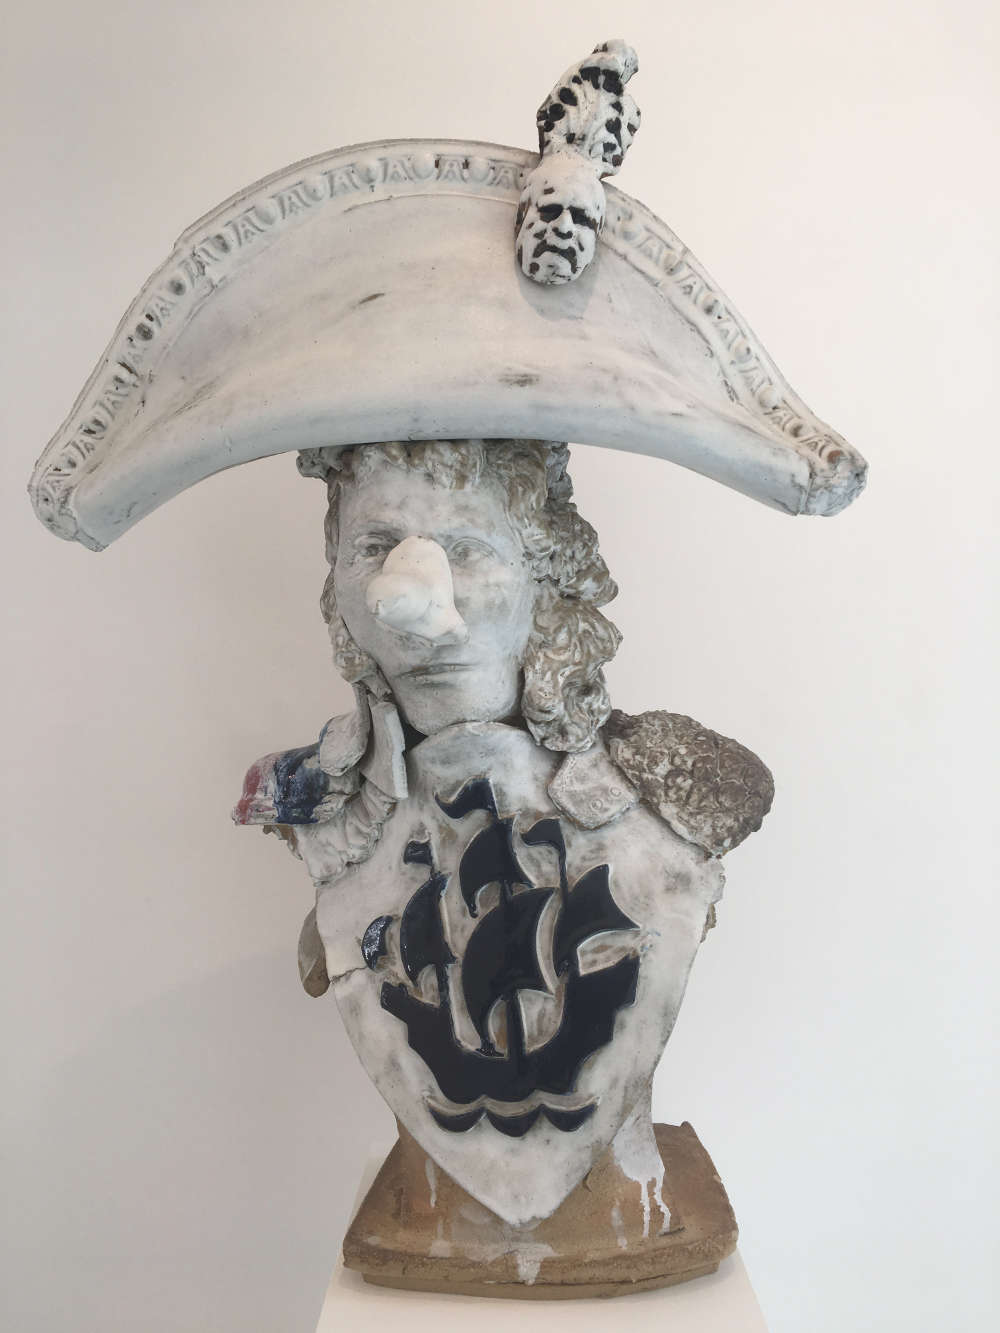 Marcus Harvey, The White Duke, 2018. Glazed stoneware 86 x 60 x 31 cm